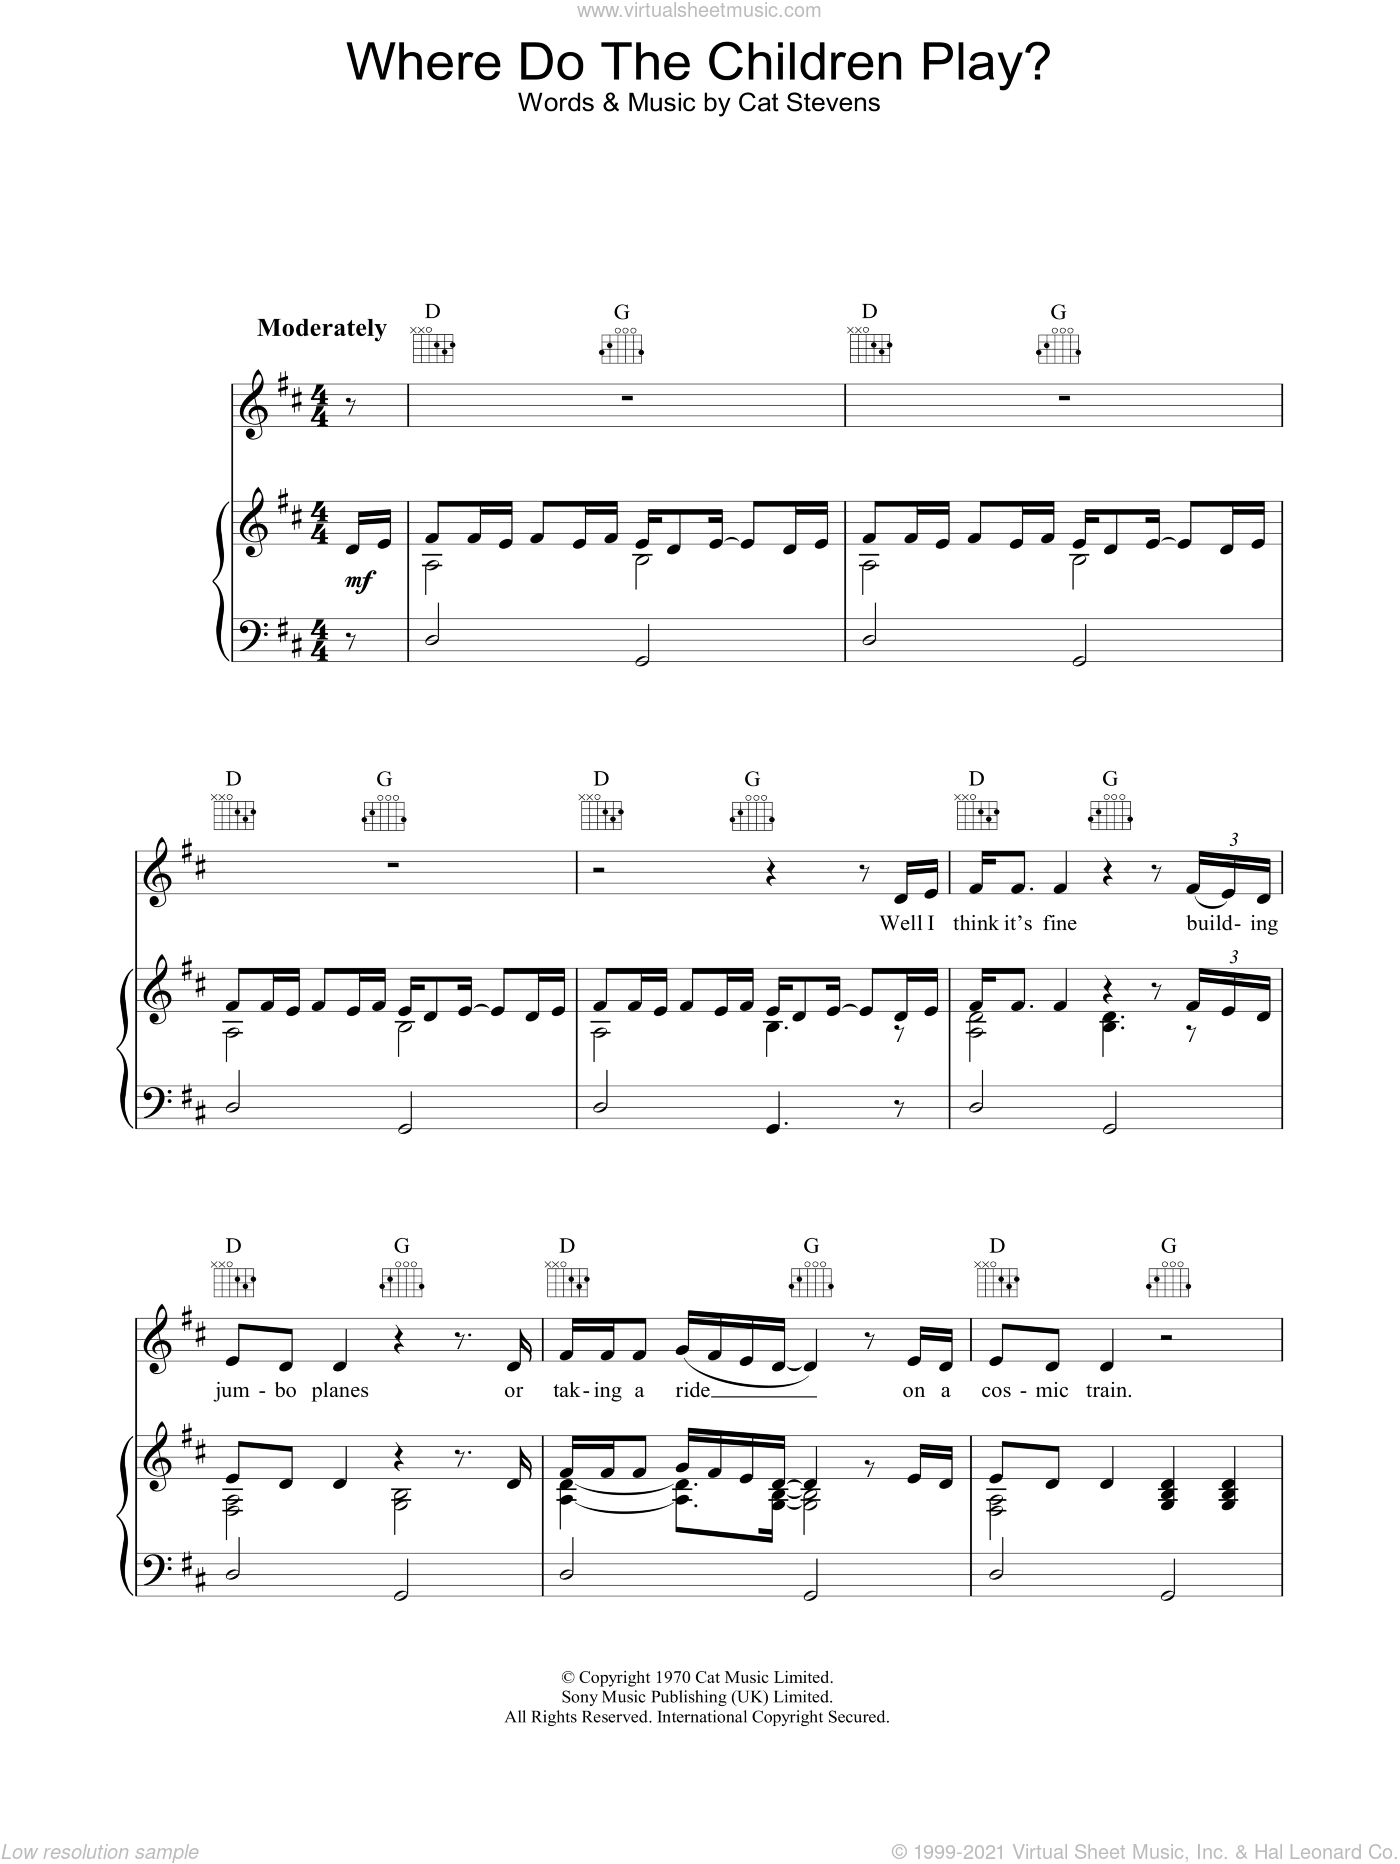 Where Do The Children Play? sheet music for voice, piano or guitar by Cat Stevens. Score Image Preview.